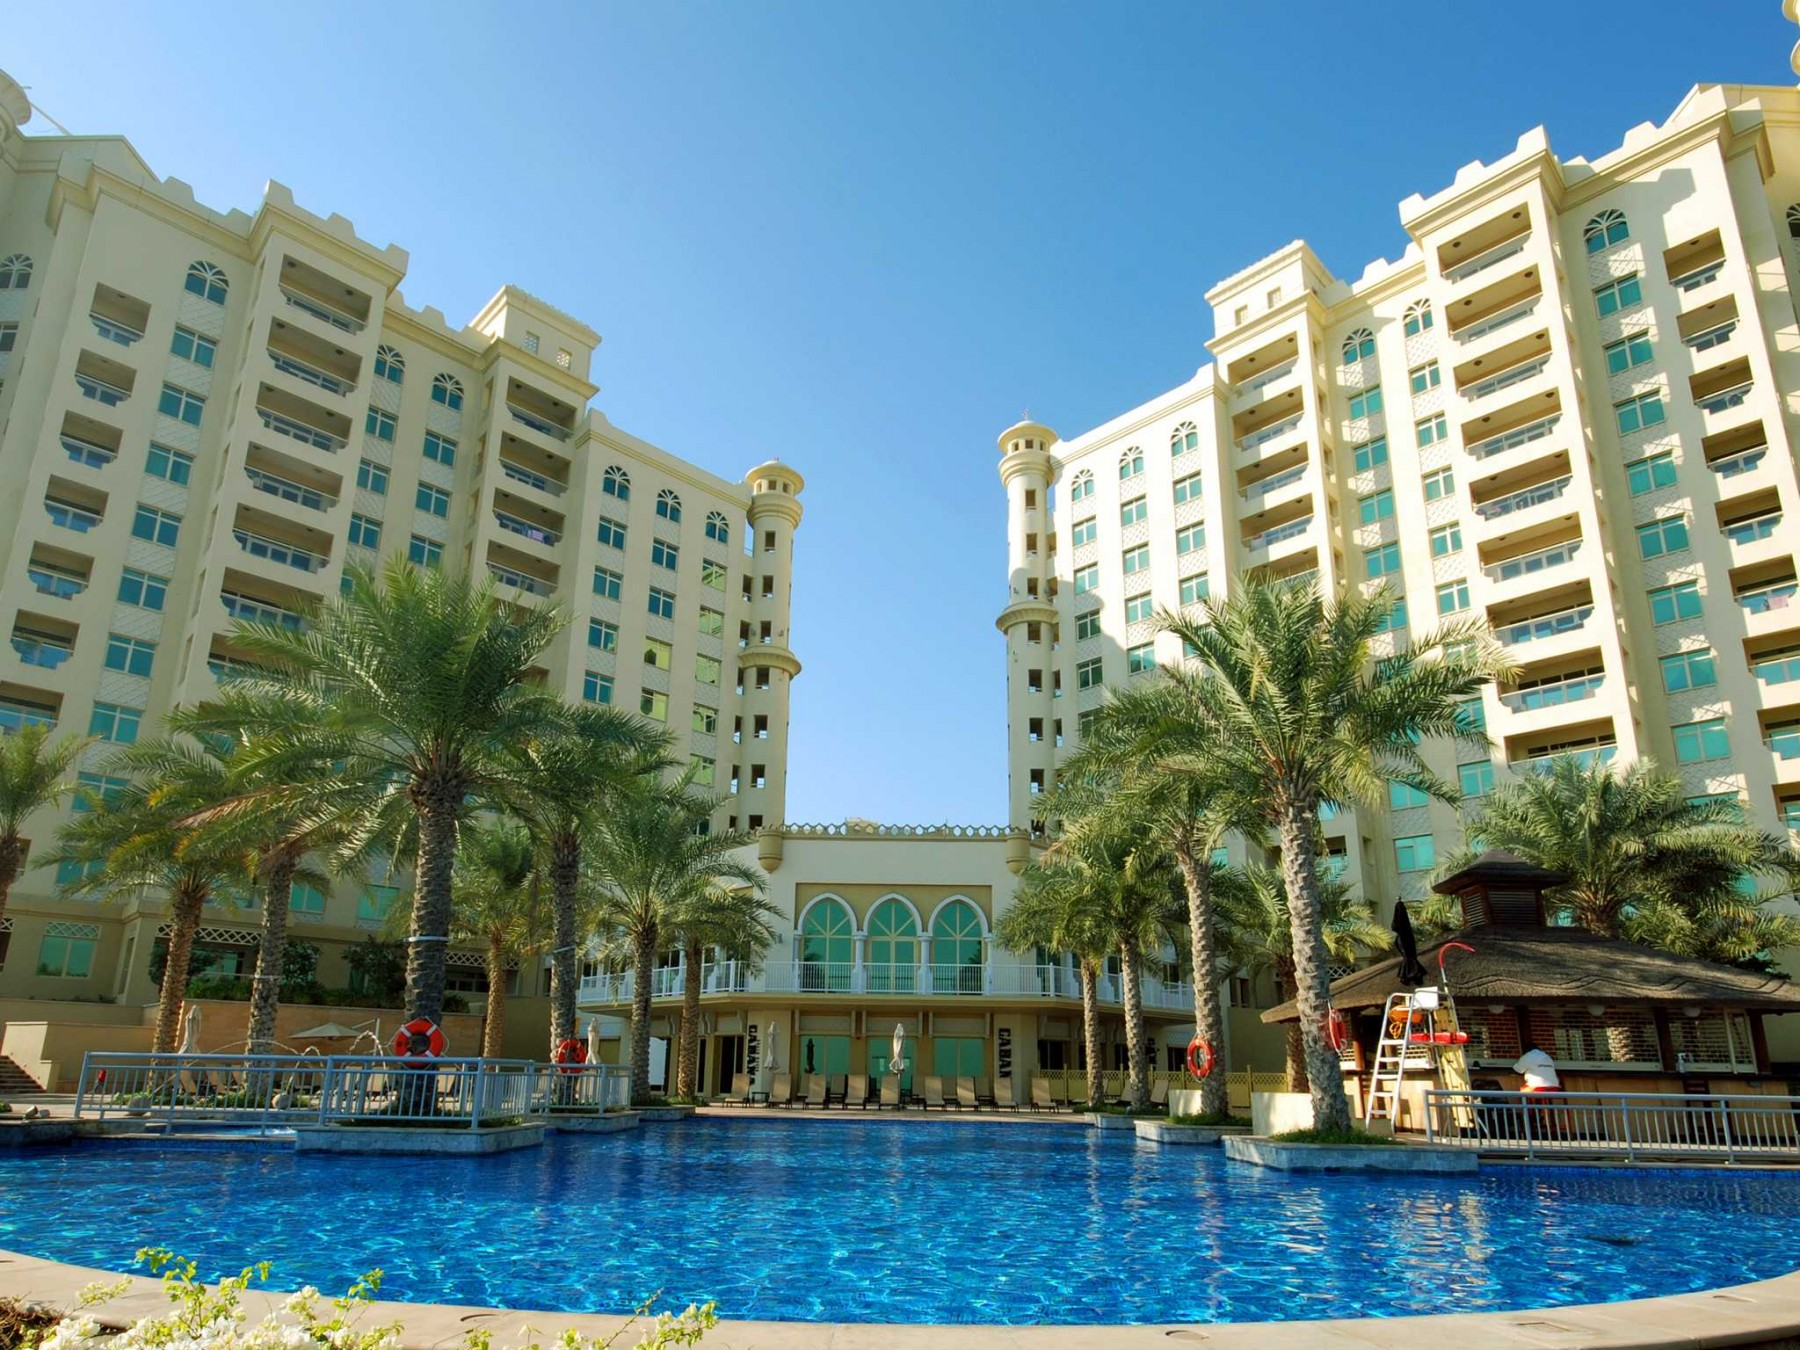 Apartments in dubai huge 3 br apartment on the palm jumeirah - Appartement avec vue palm jumeirah dubai ...